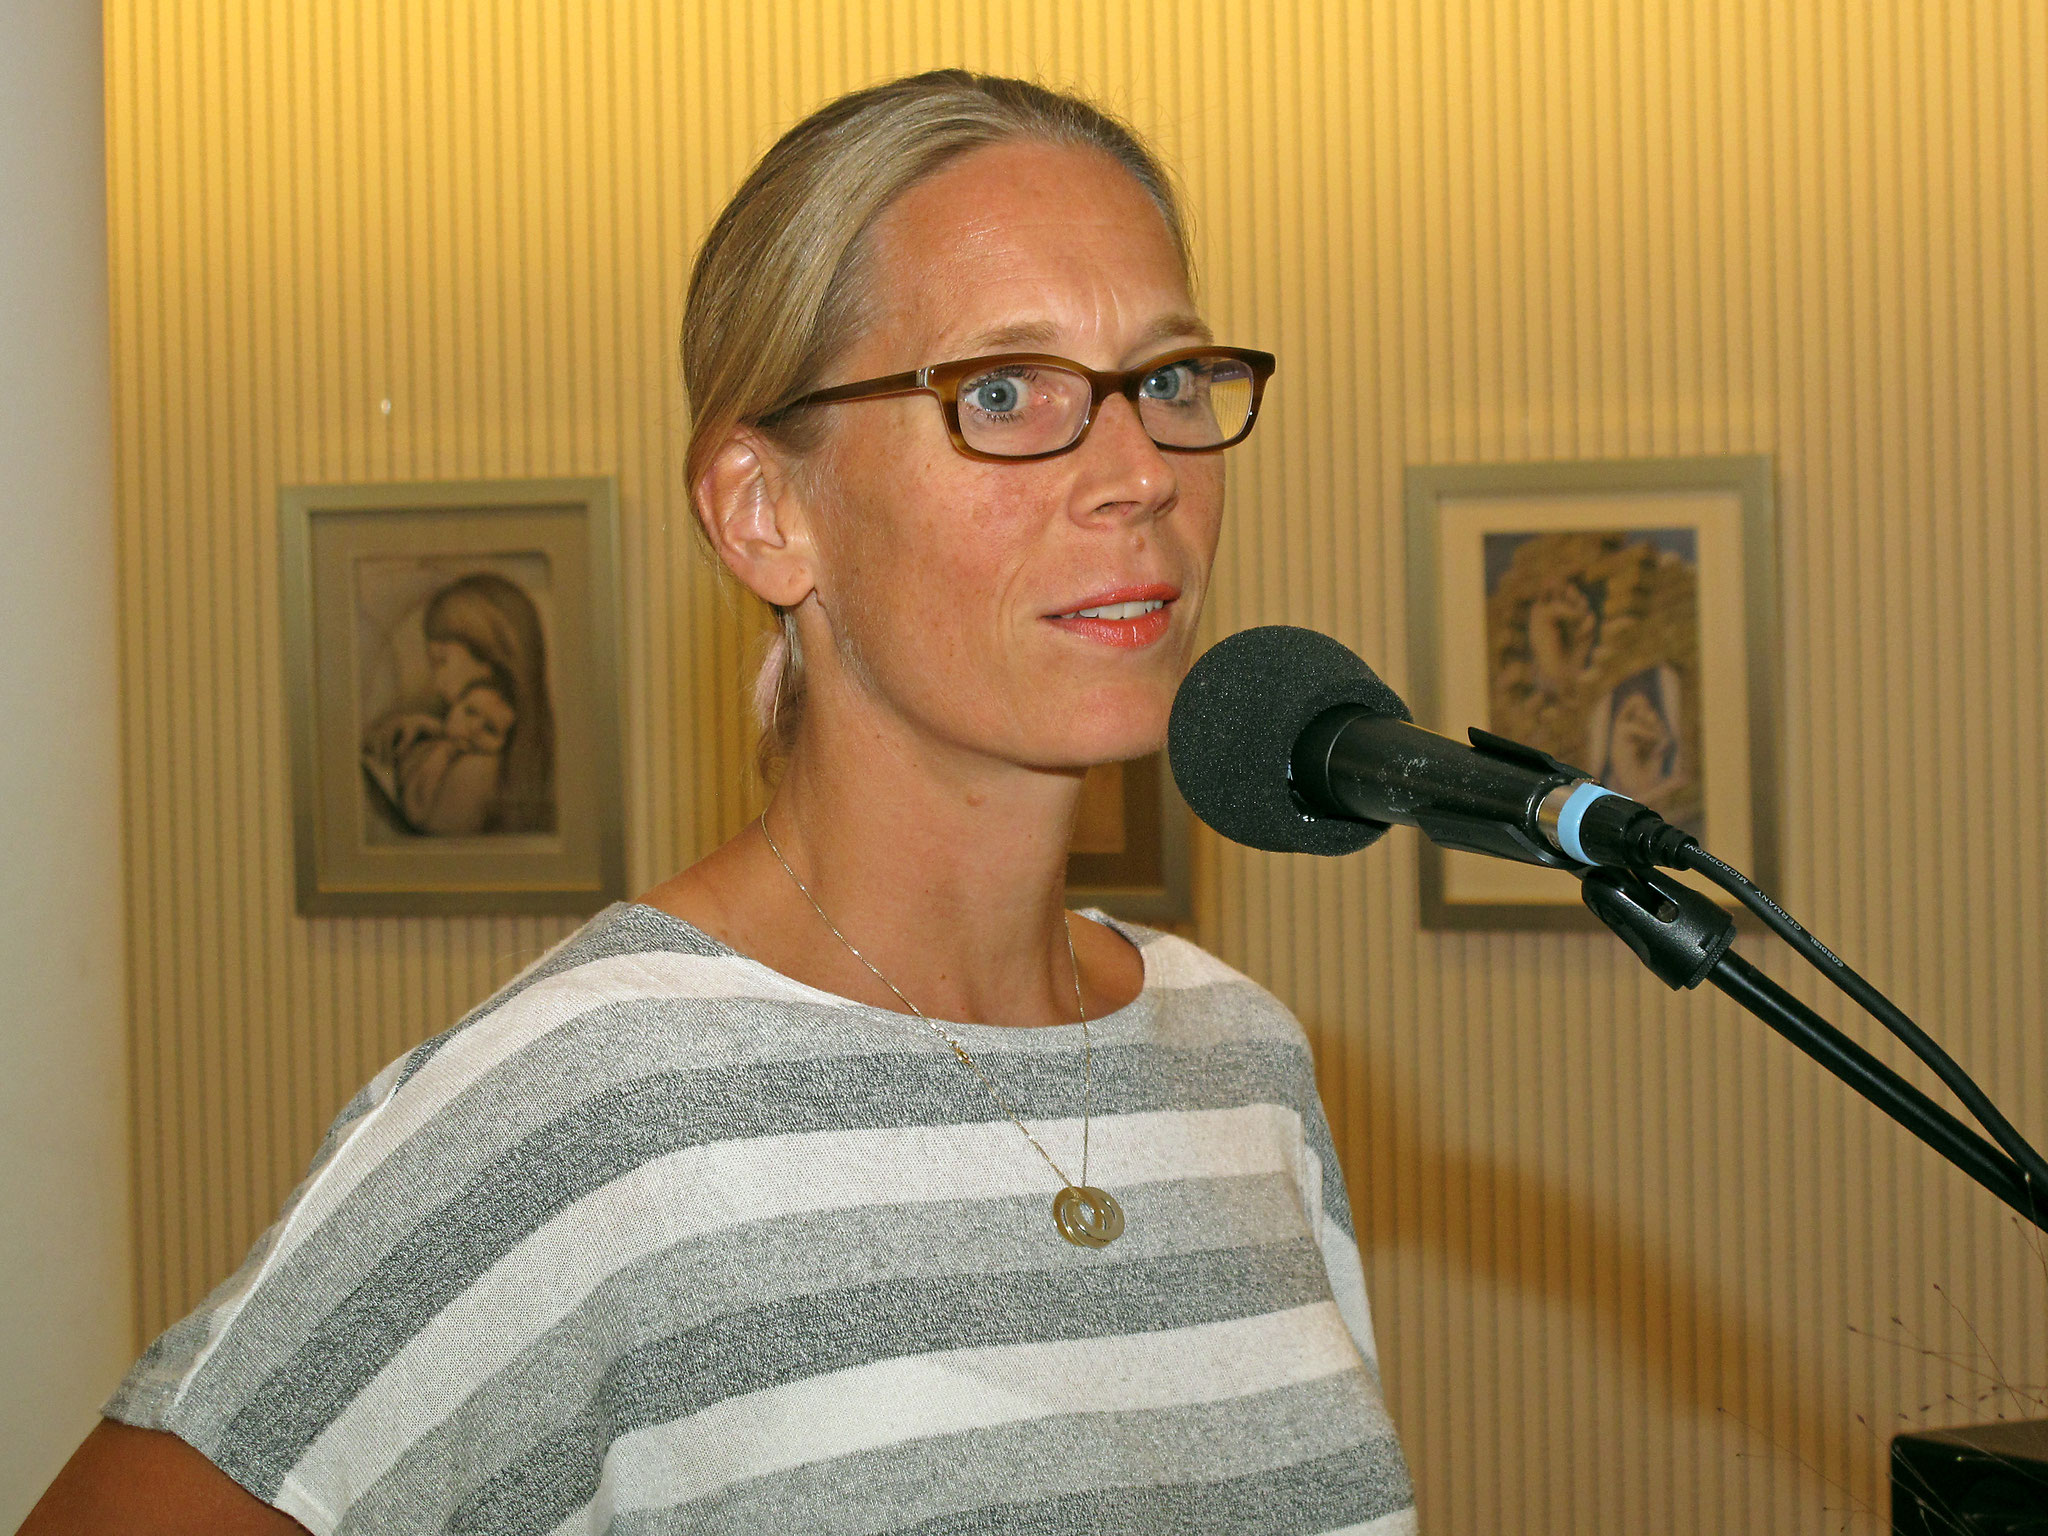 Frau Corinne Wissing - Stiftung 'I care for you'